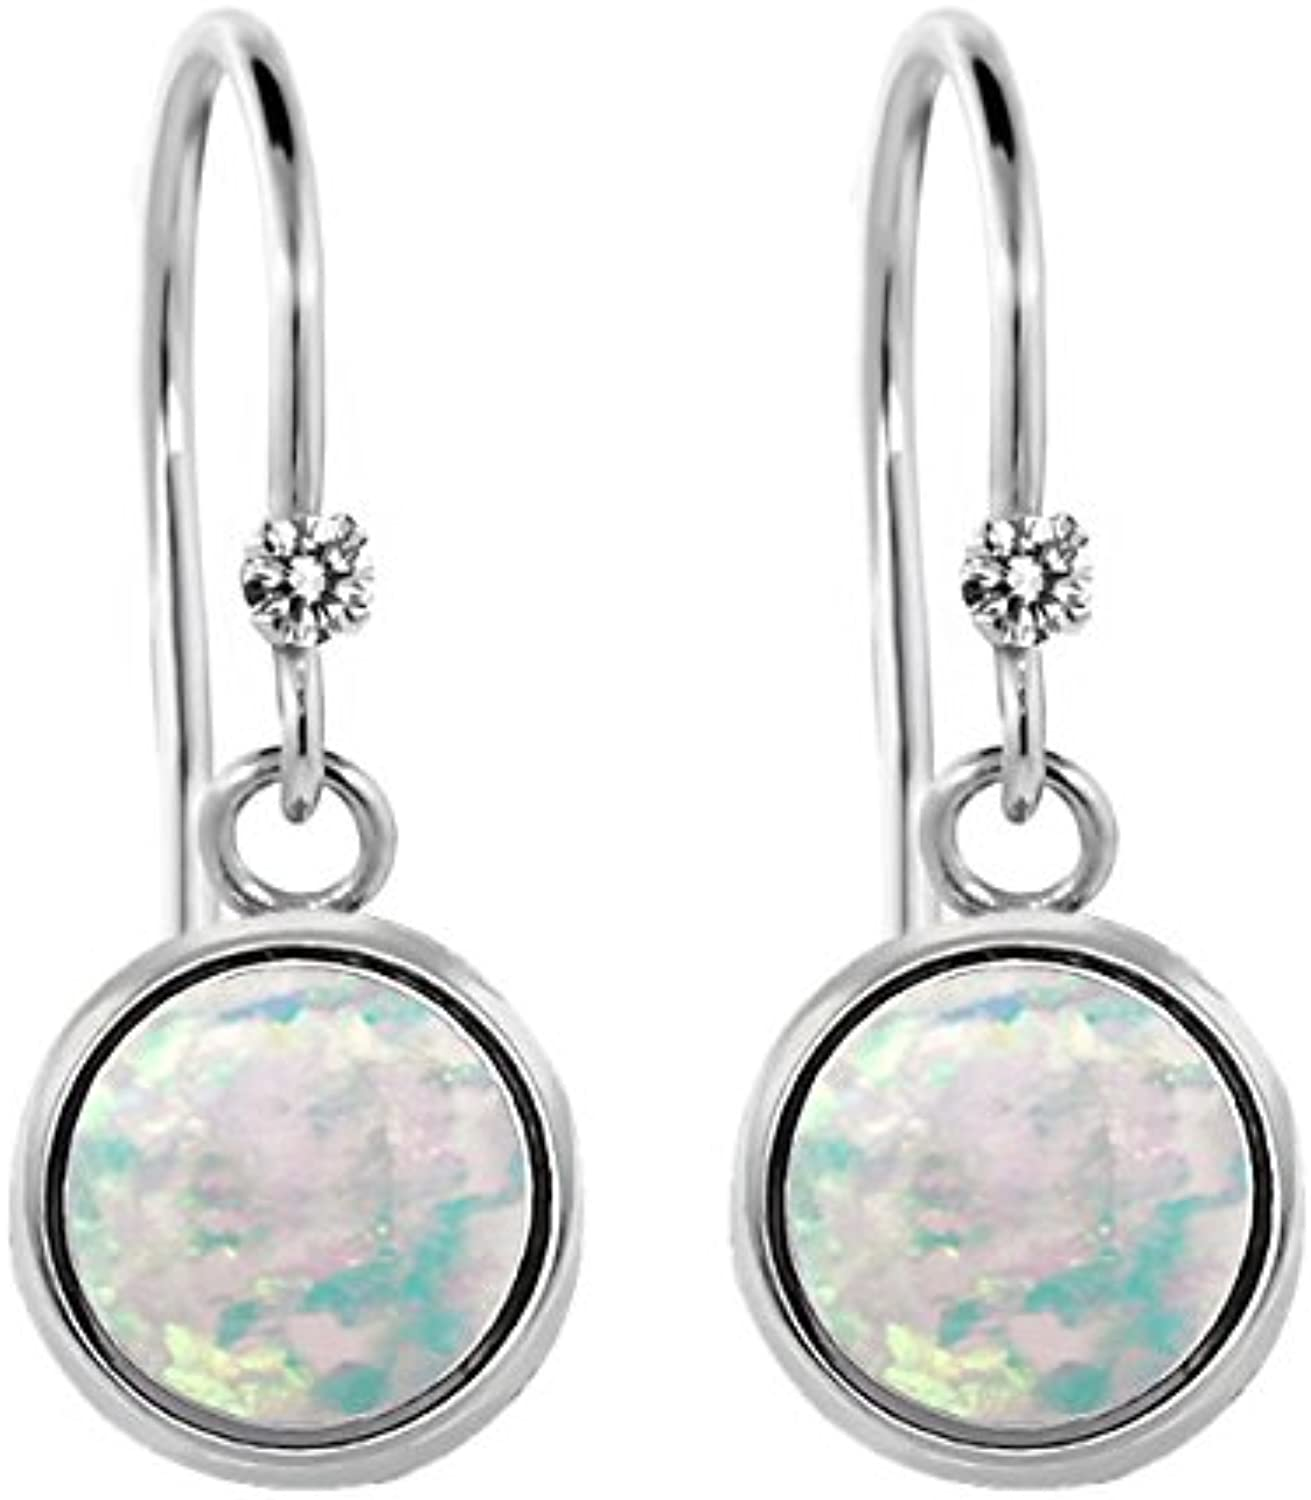 1.32 Ct Round White Simulated Opal White Diamond 925 Sterling Silver Earrings